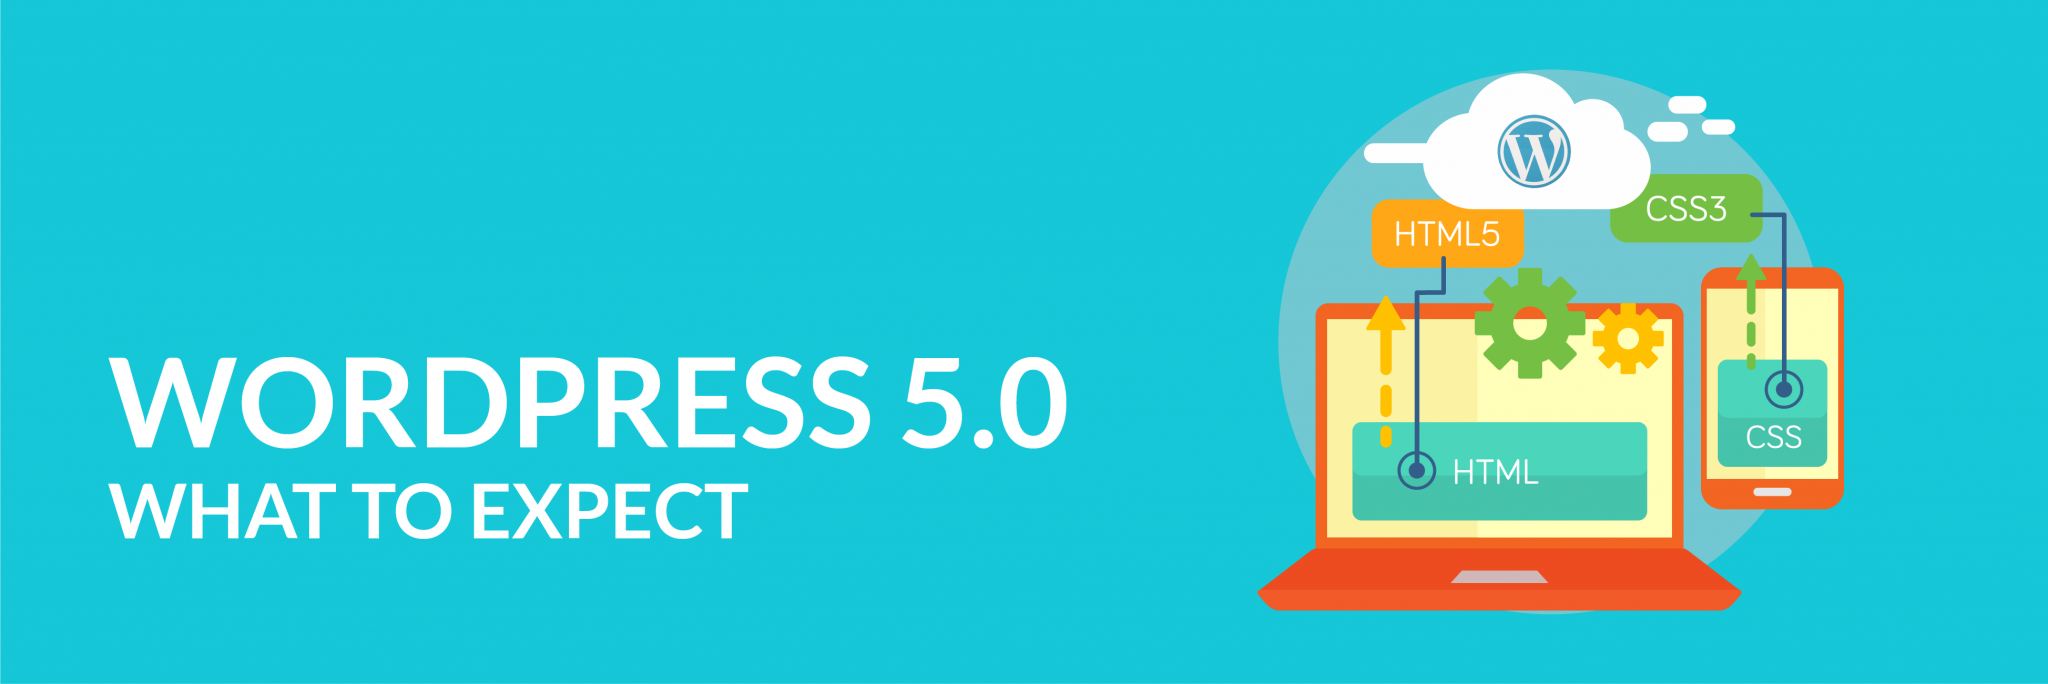 Read more on New Version Of WordPress (5.0) What's Changed & How To Update